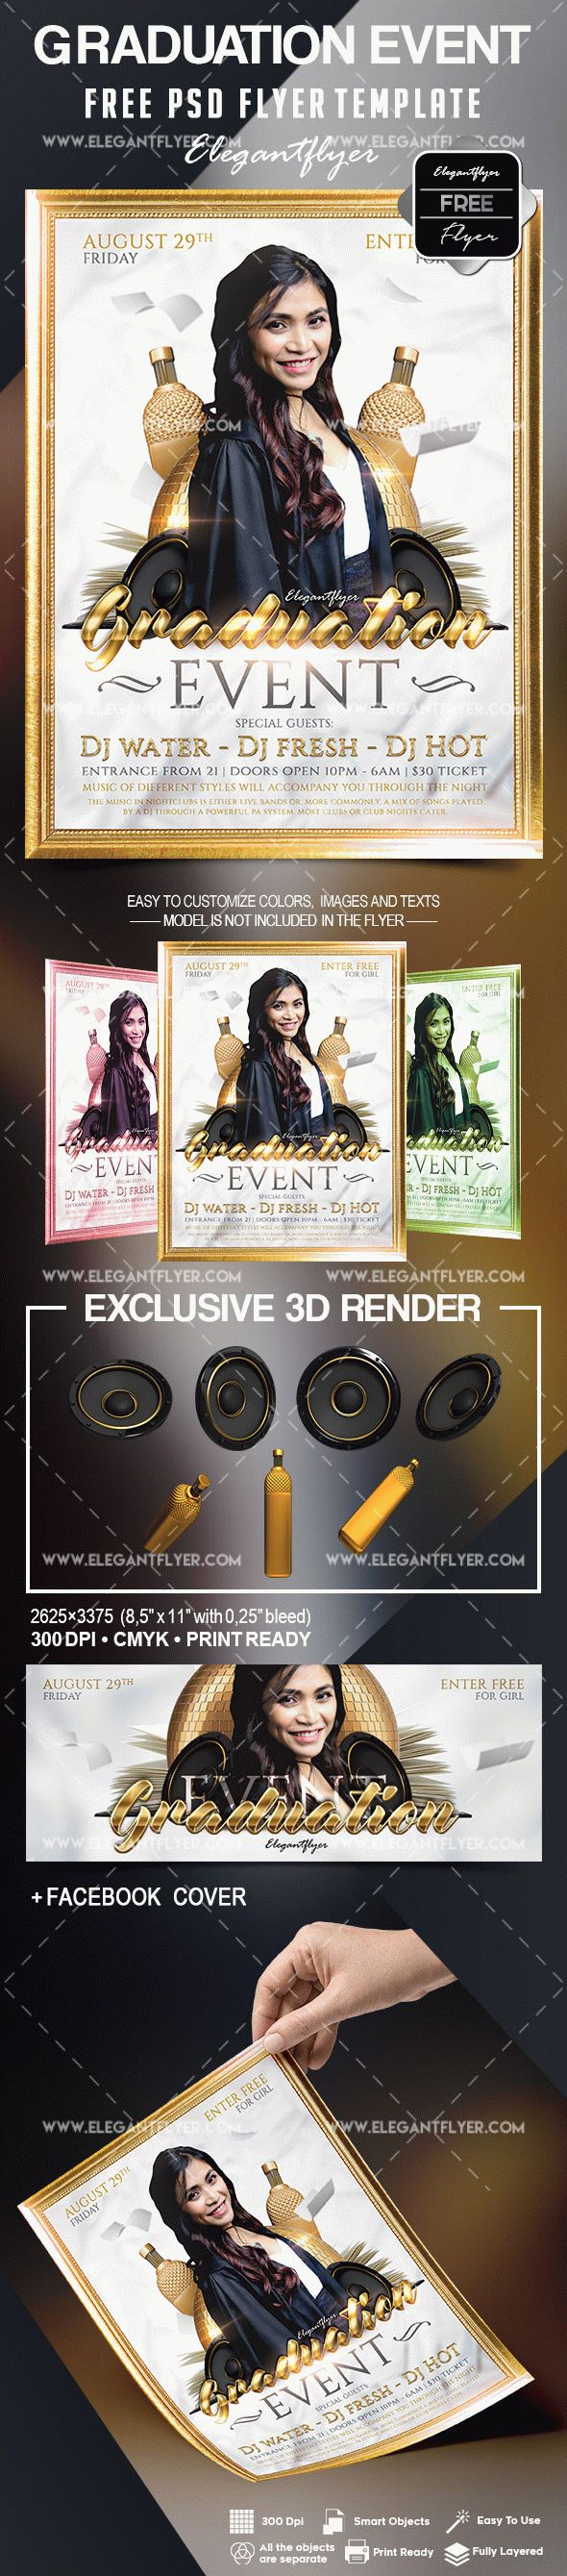 Free graduation event flyer template by elegantflyer free graduation event flyer template pronofoot35fo Gallery